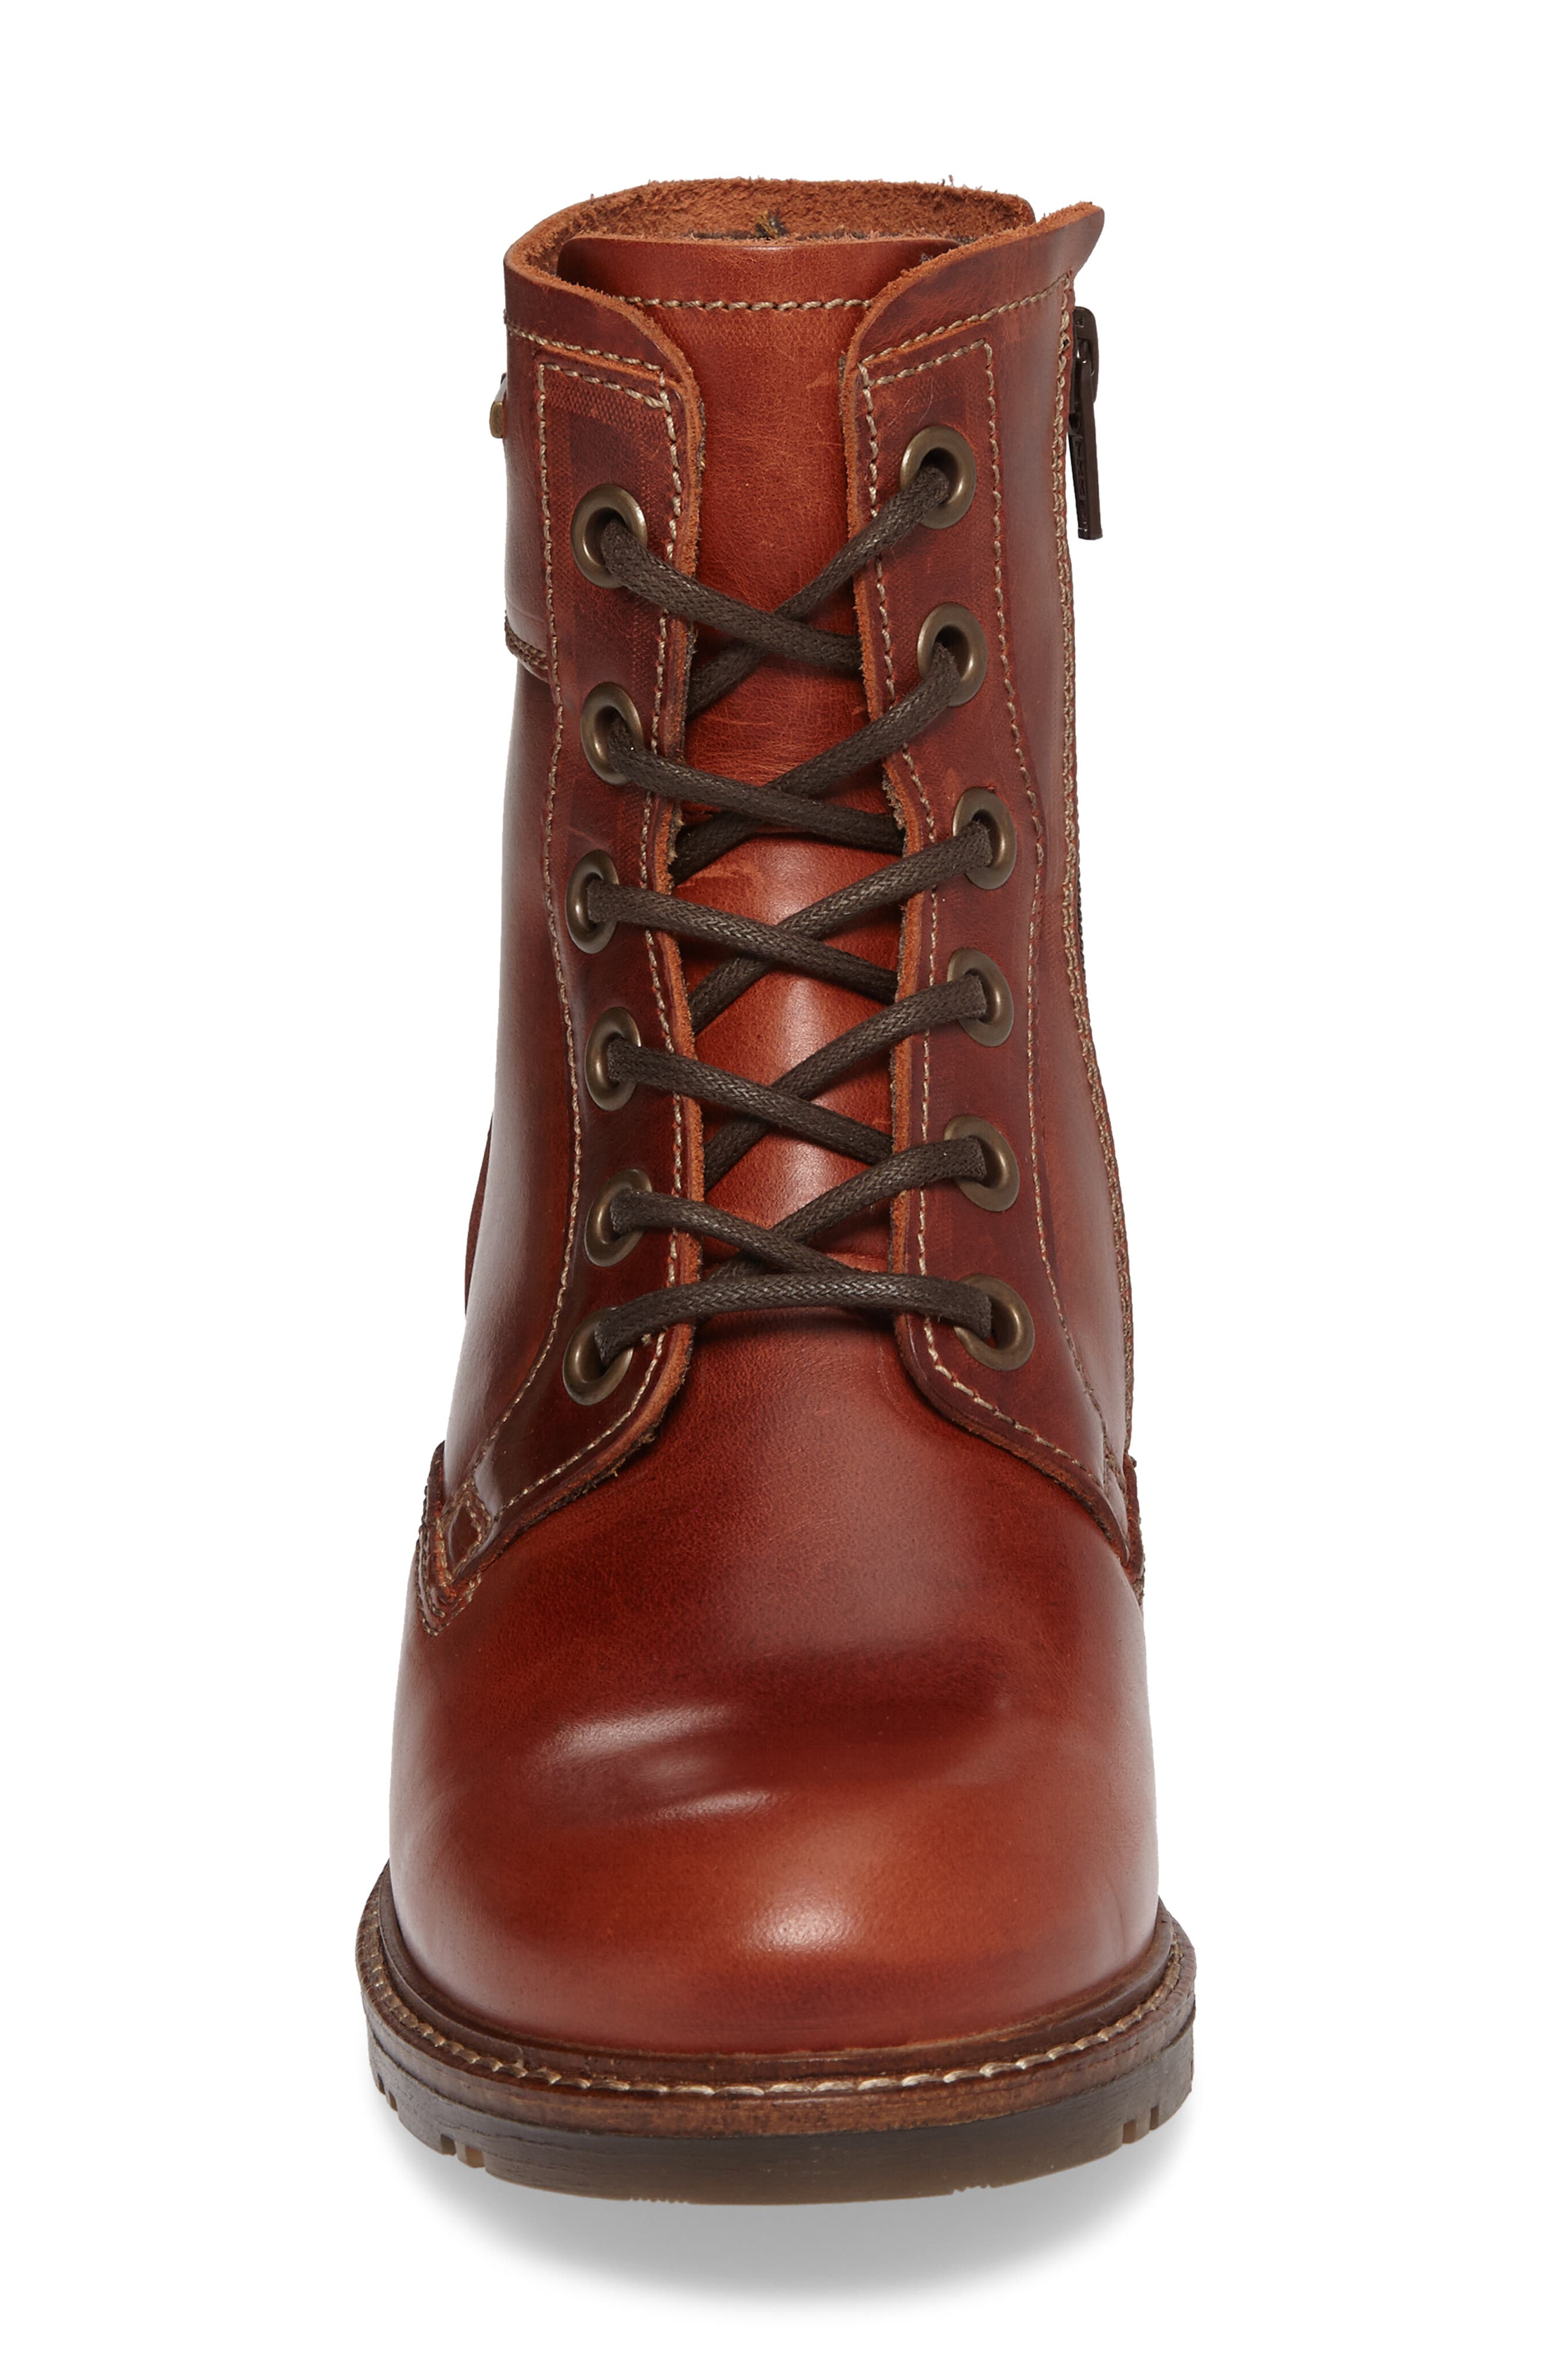 Silo Waterproof Gore-Tex<sup>®</sup> Boot,                             Alternate thumbnail 4, color,                             Brick Leather